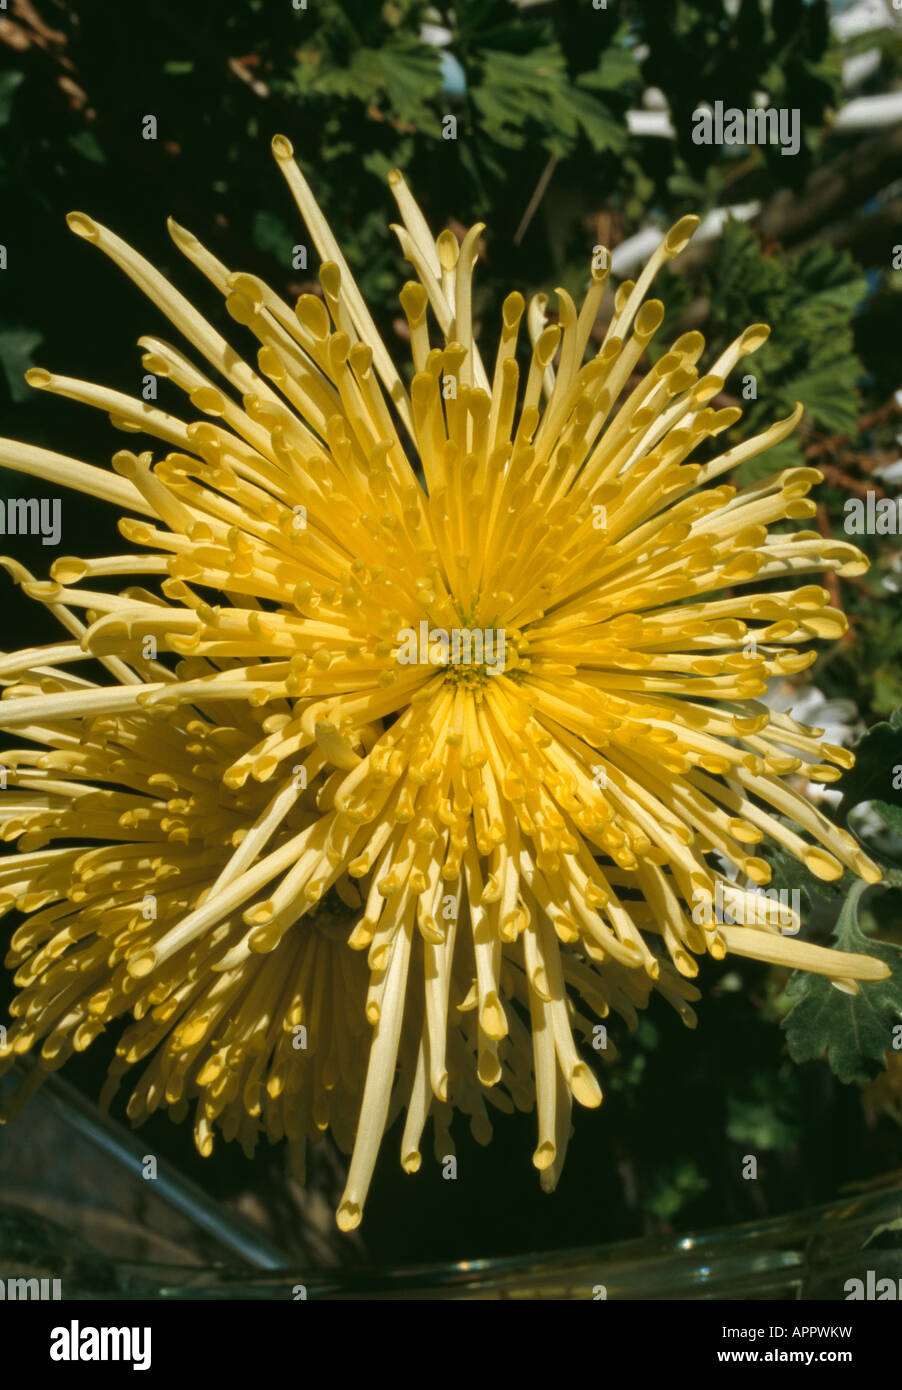 Chrysanthenum spider yellow full faced spread out petals - Stock Image